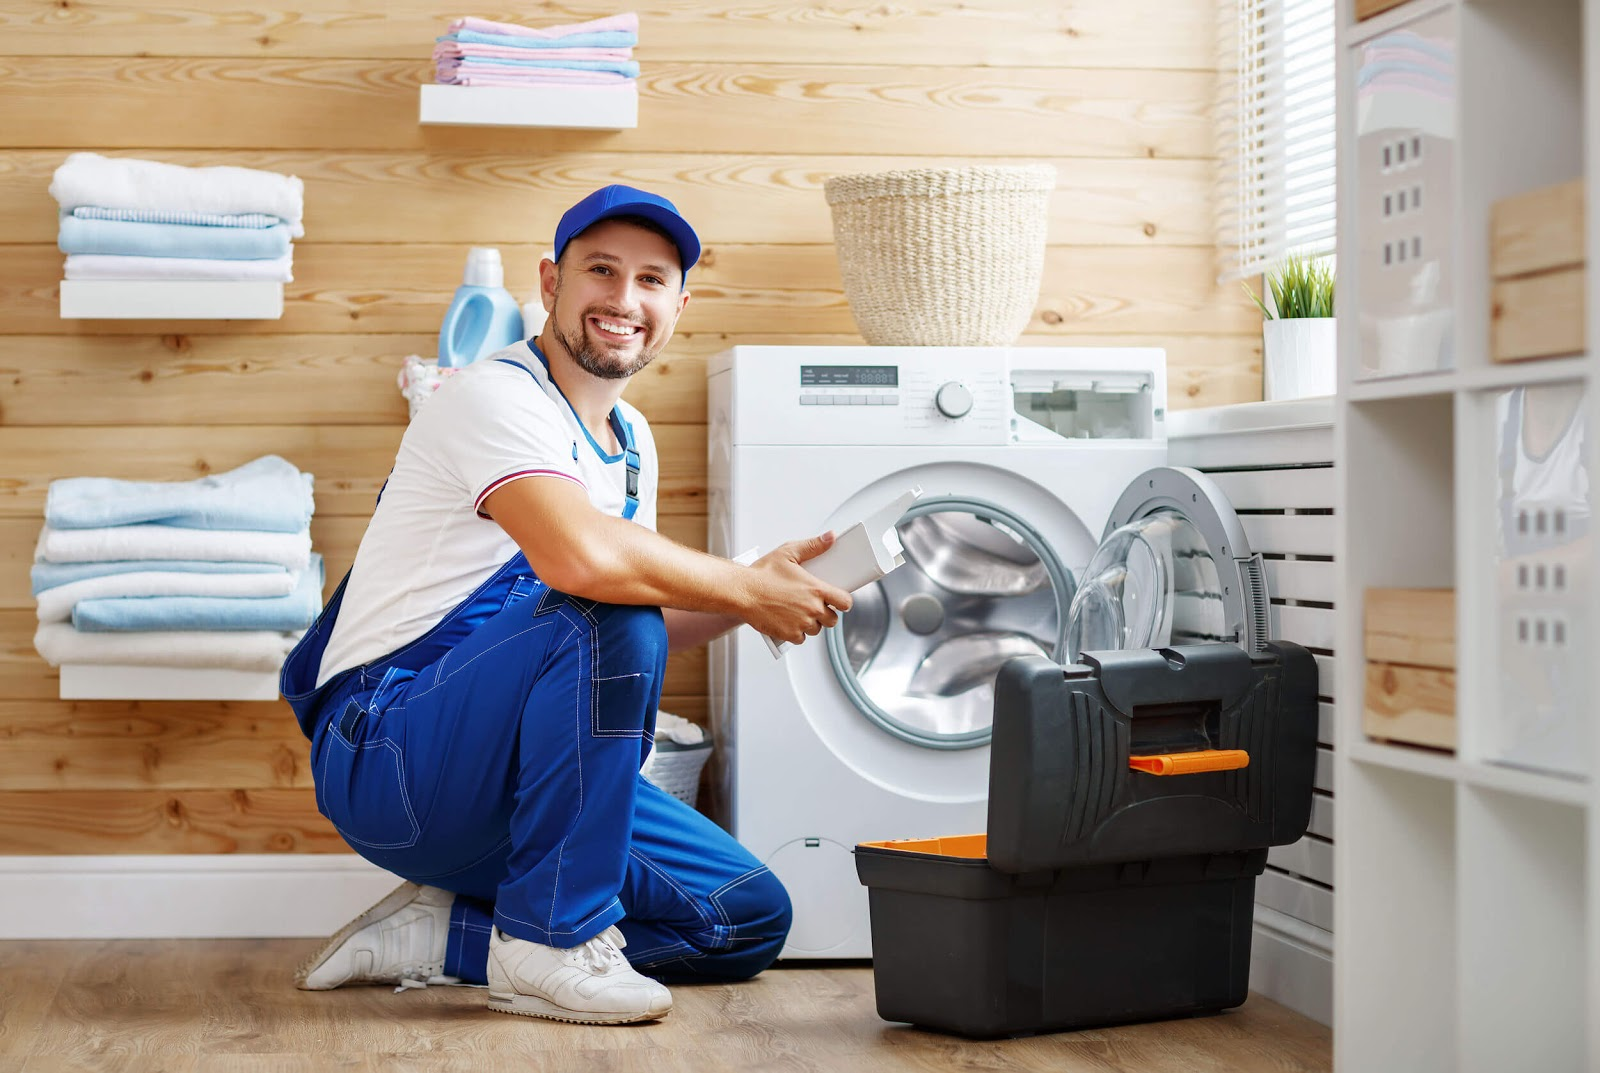 Is appliance repair a good business?